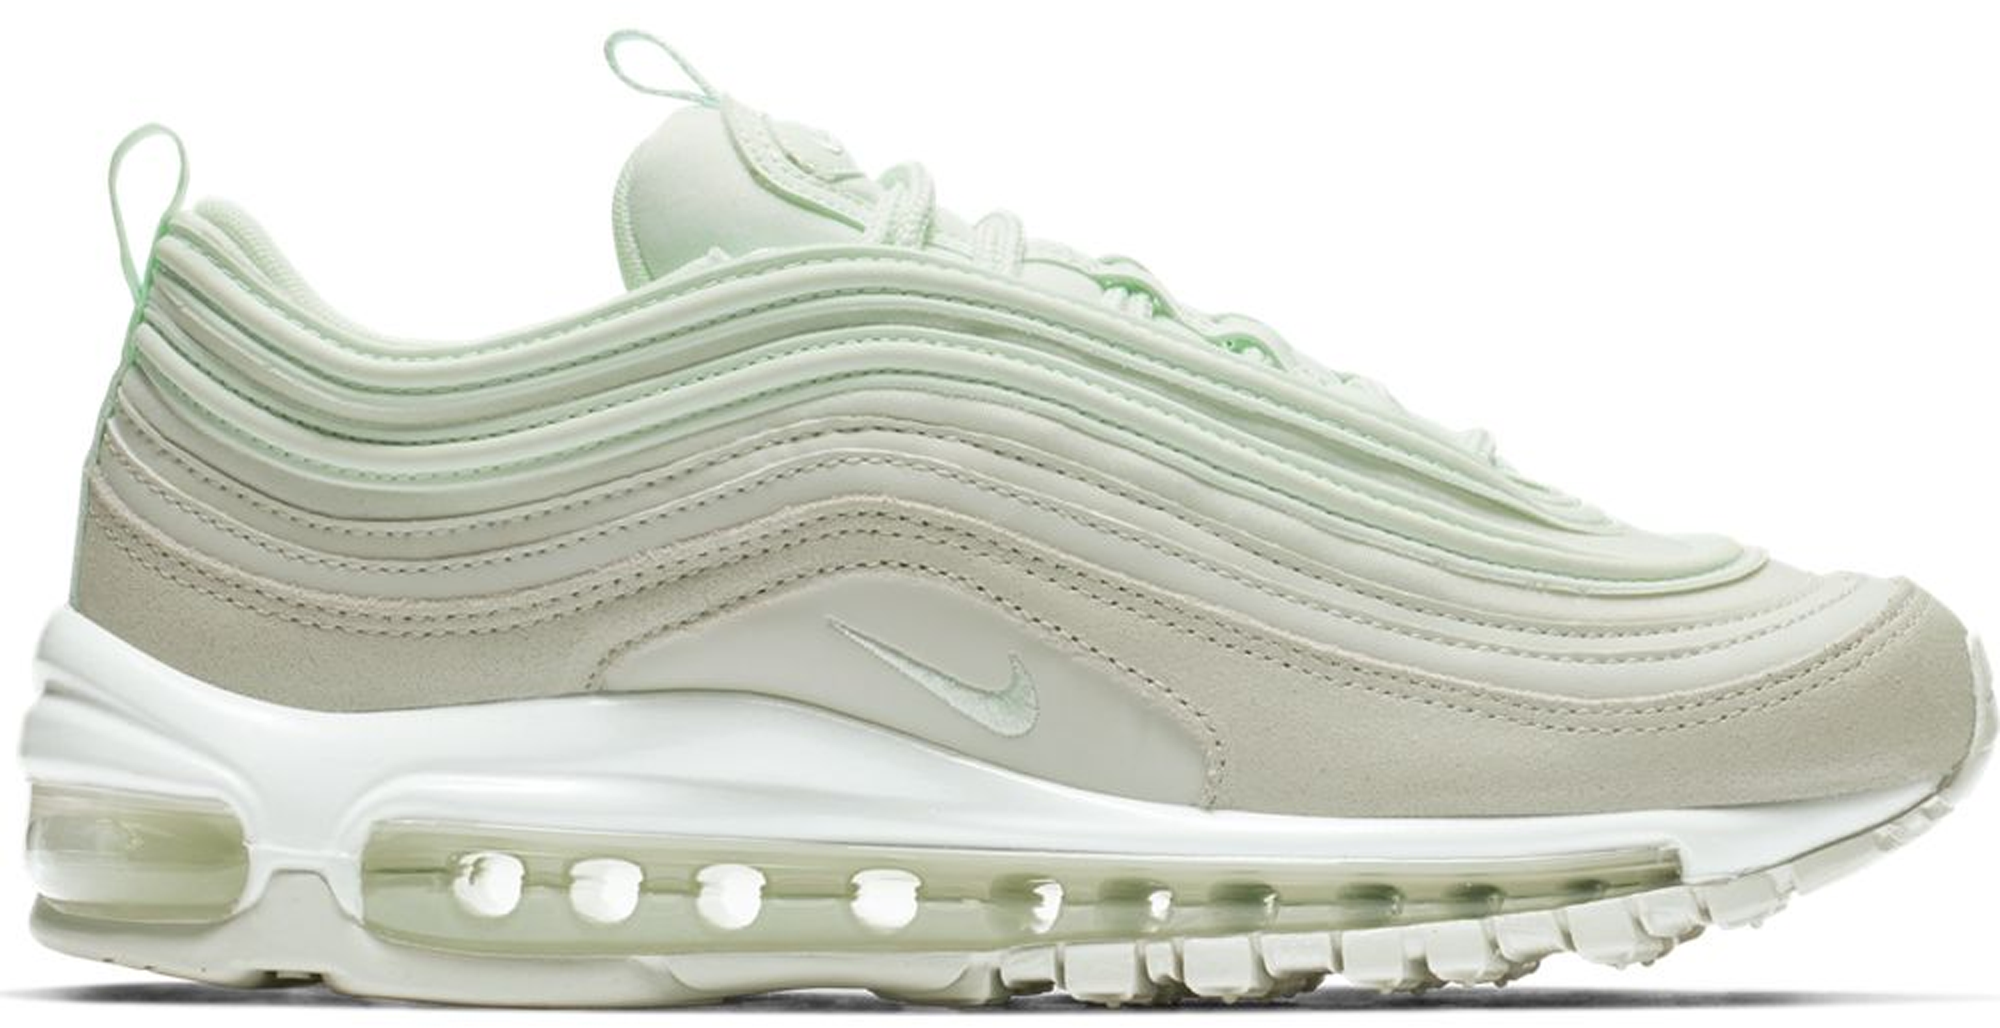 Nike Air Max 97 Barely Green (W